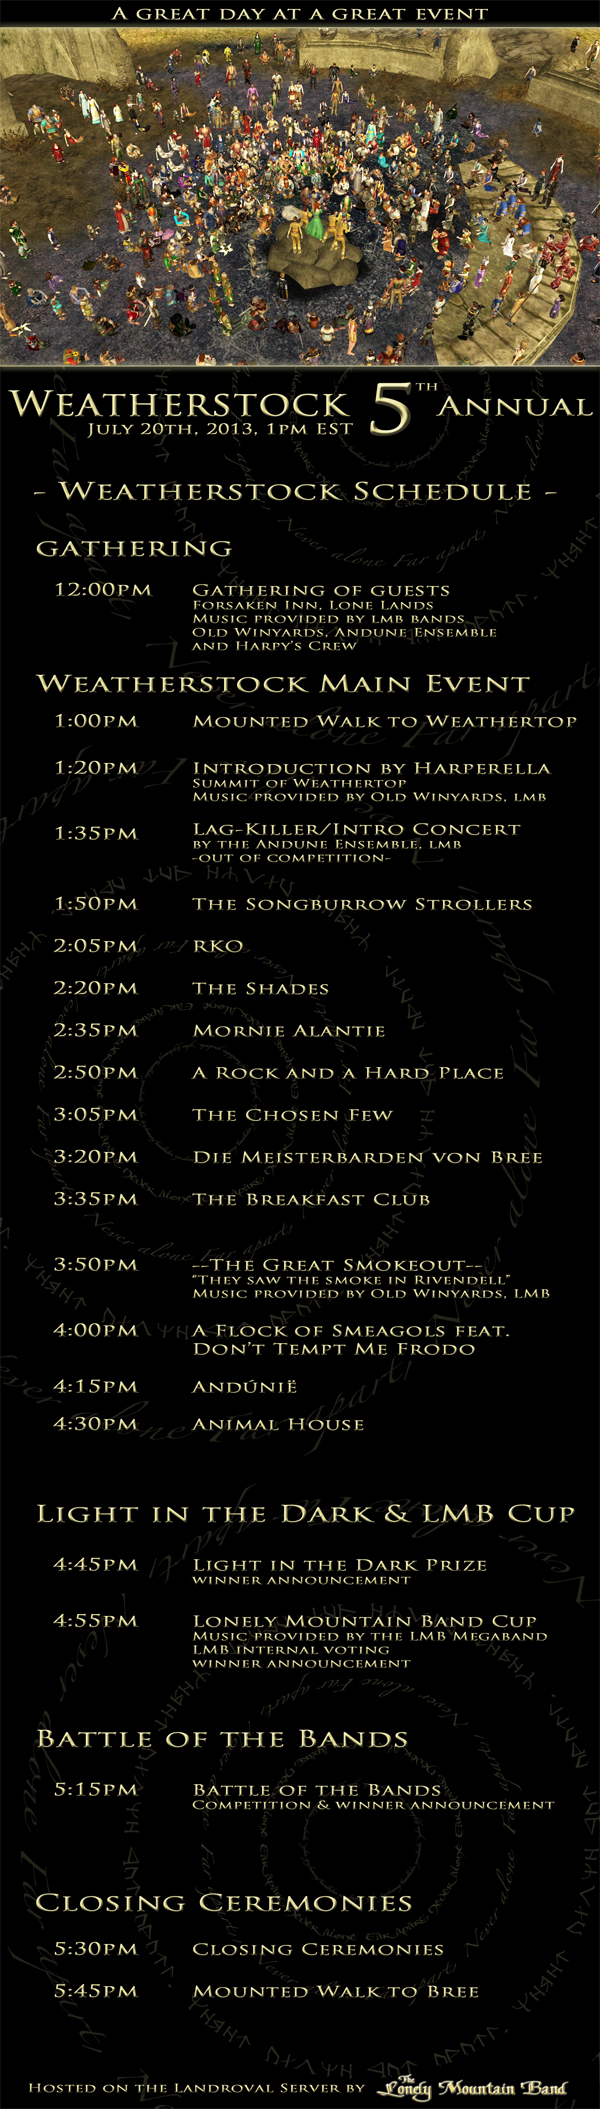 weatherstock_5_schedule_600